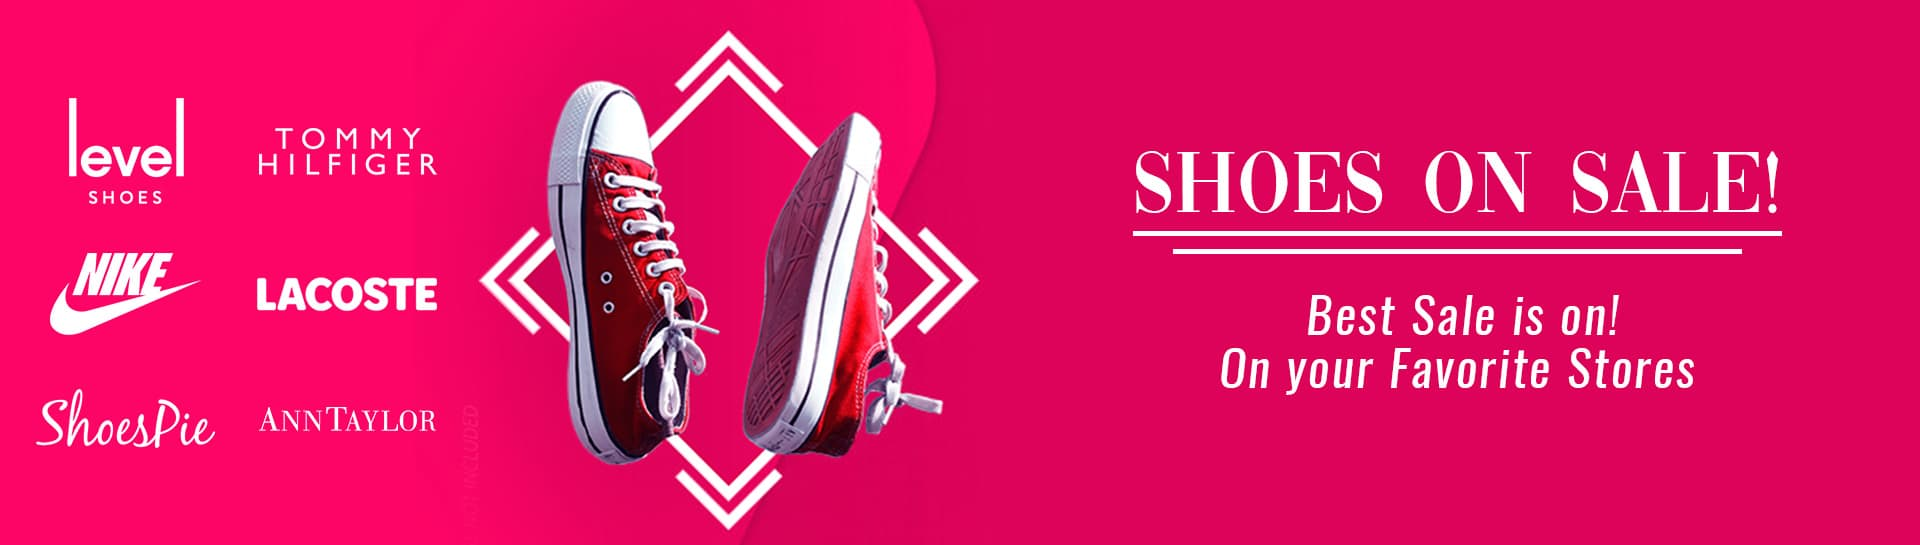 Shoes Stores Coupon Code